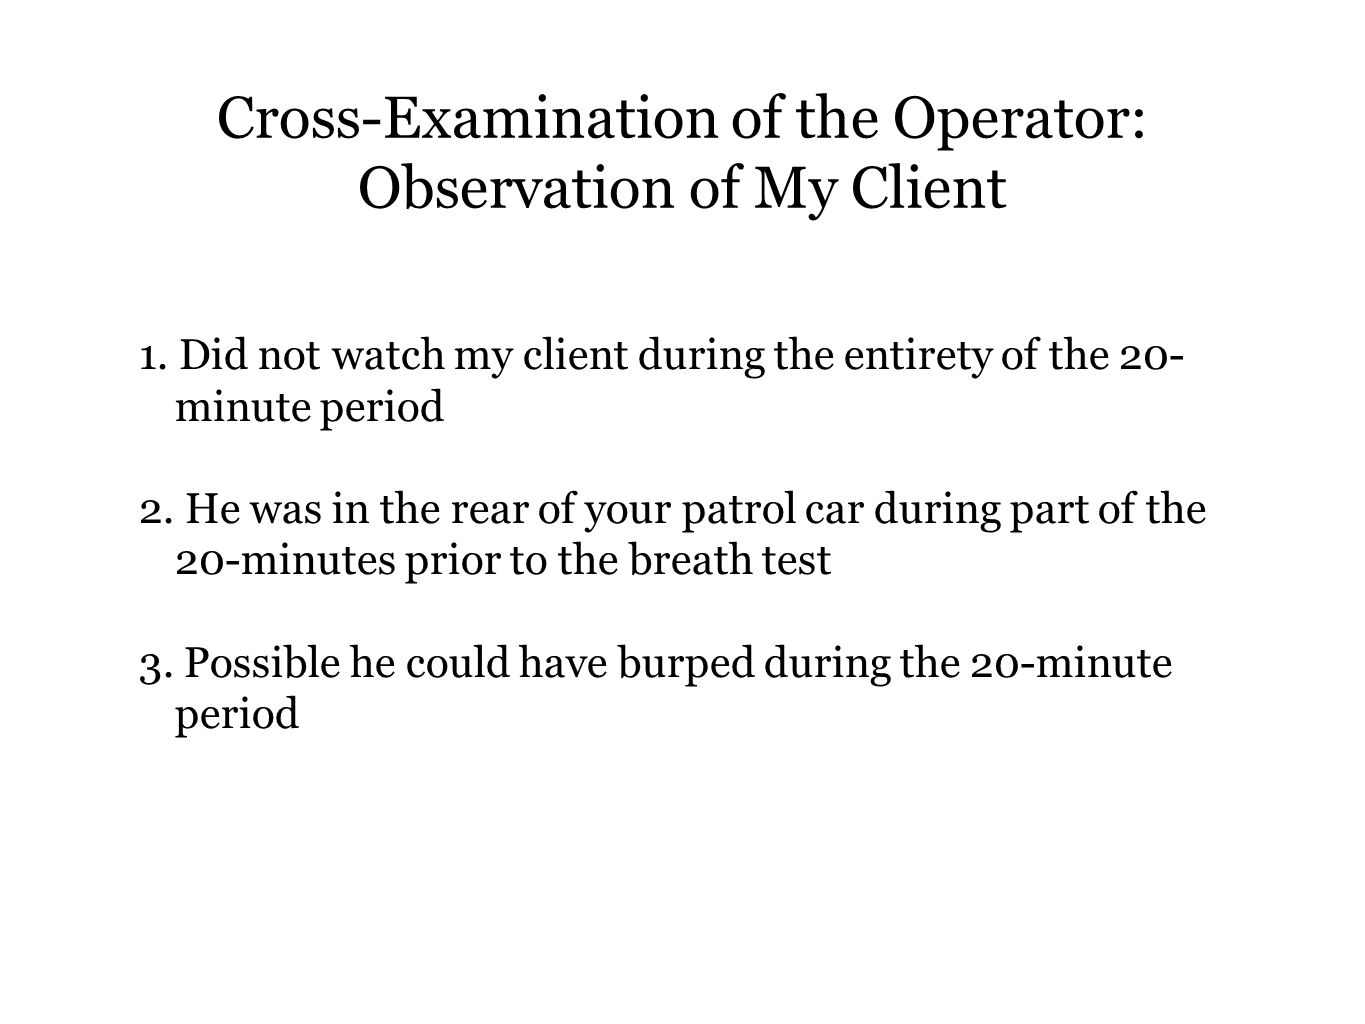 Cross-Examination of the Operator: Observation of My Client